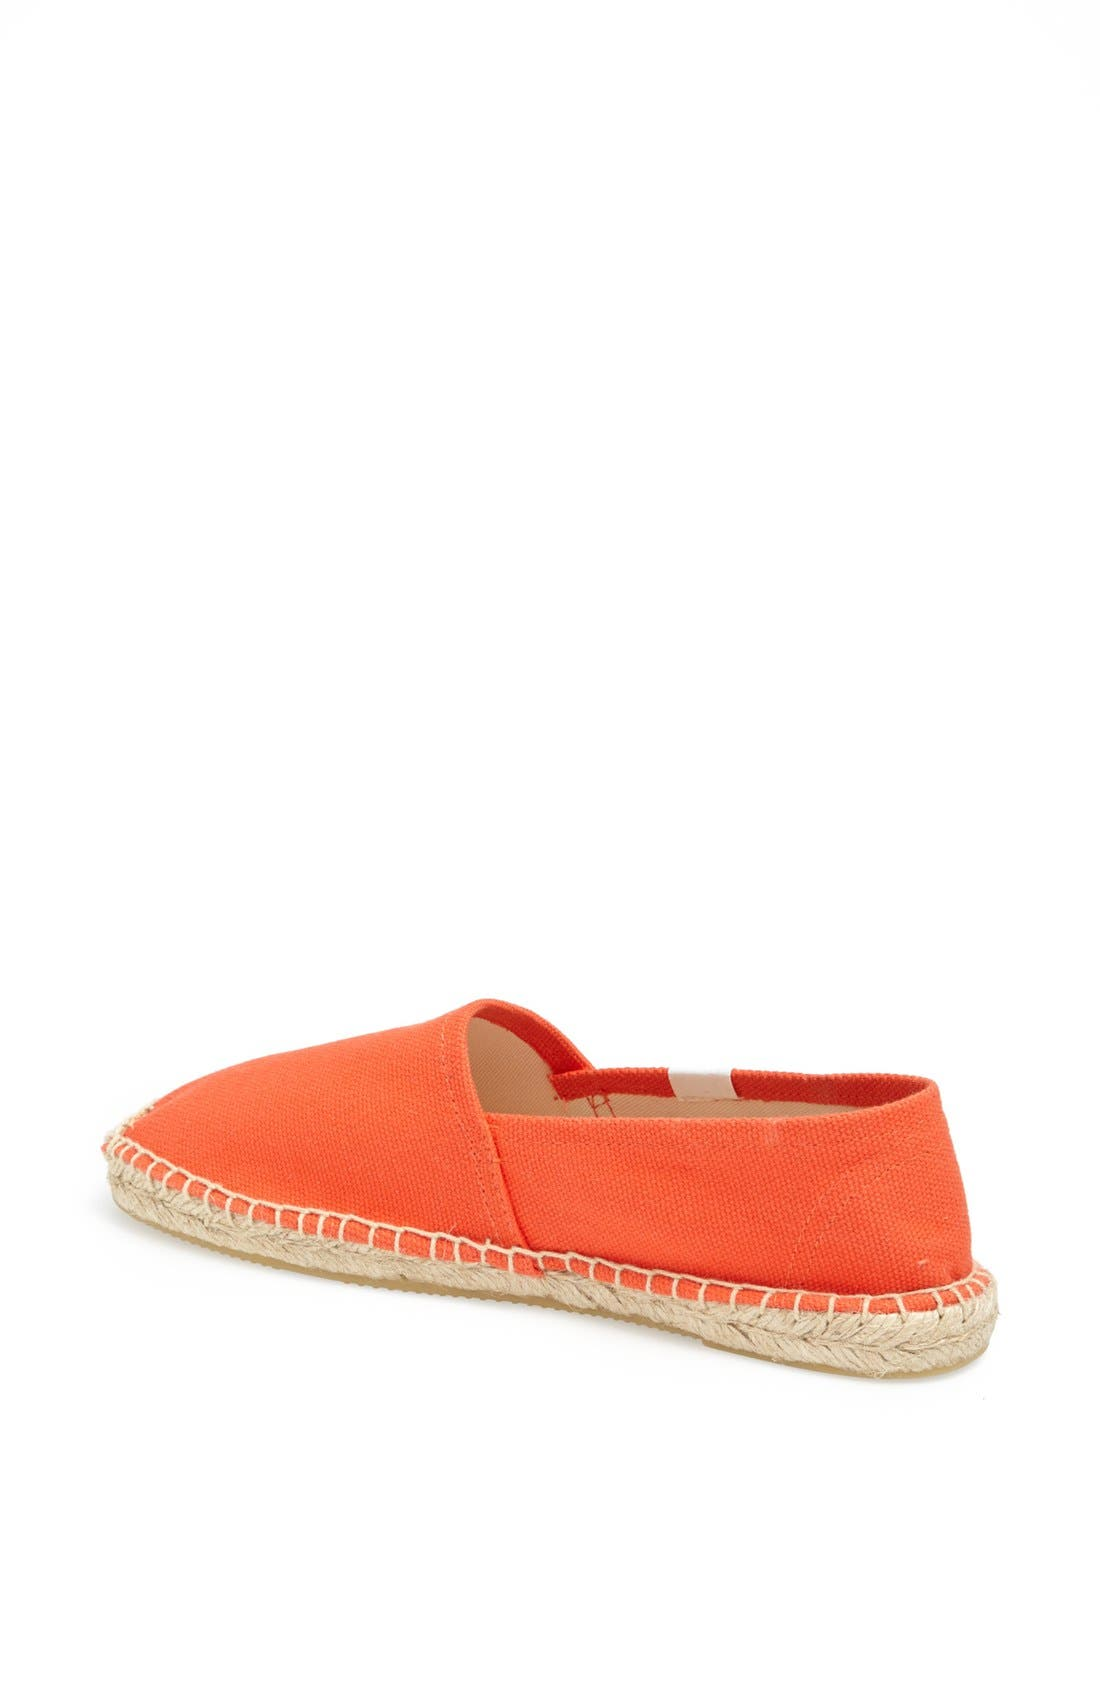 Alternate Image 2  - Soludos 'Dali' Slip-On (Women)